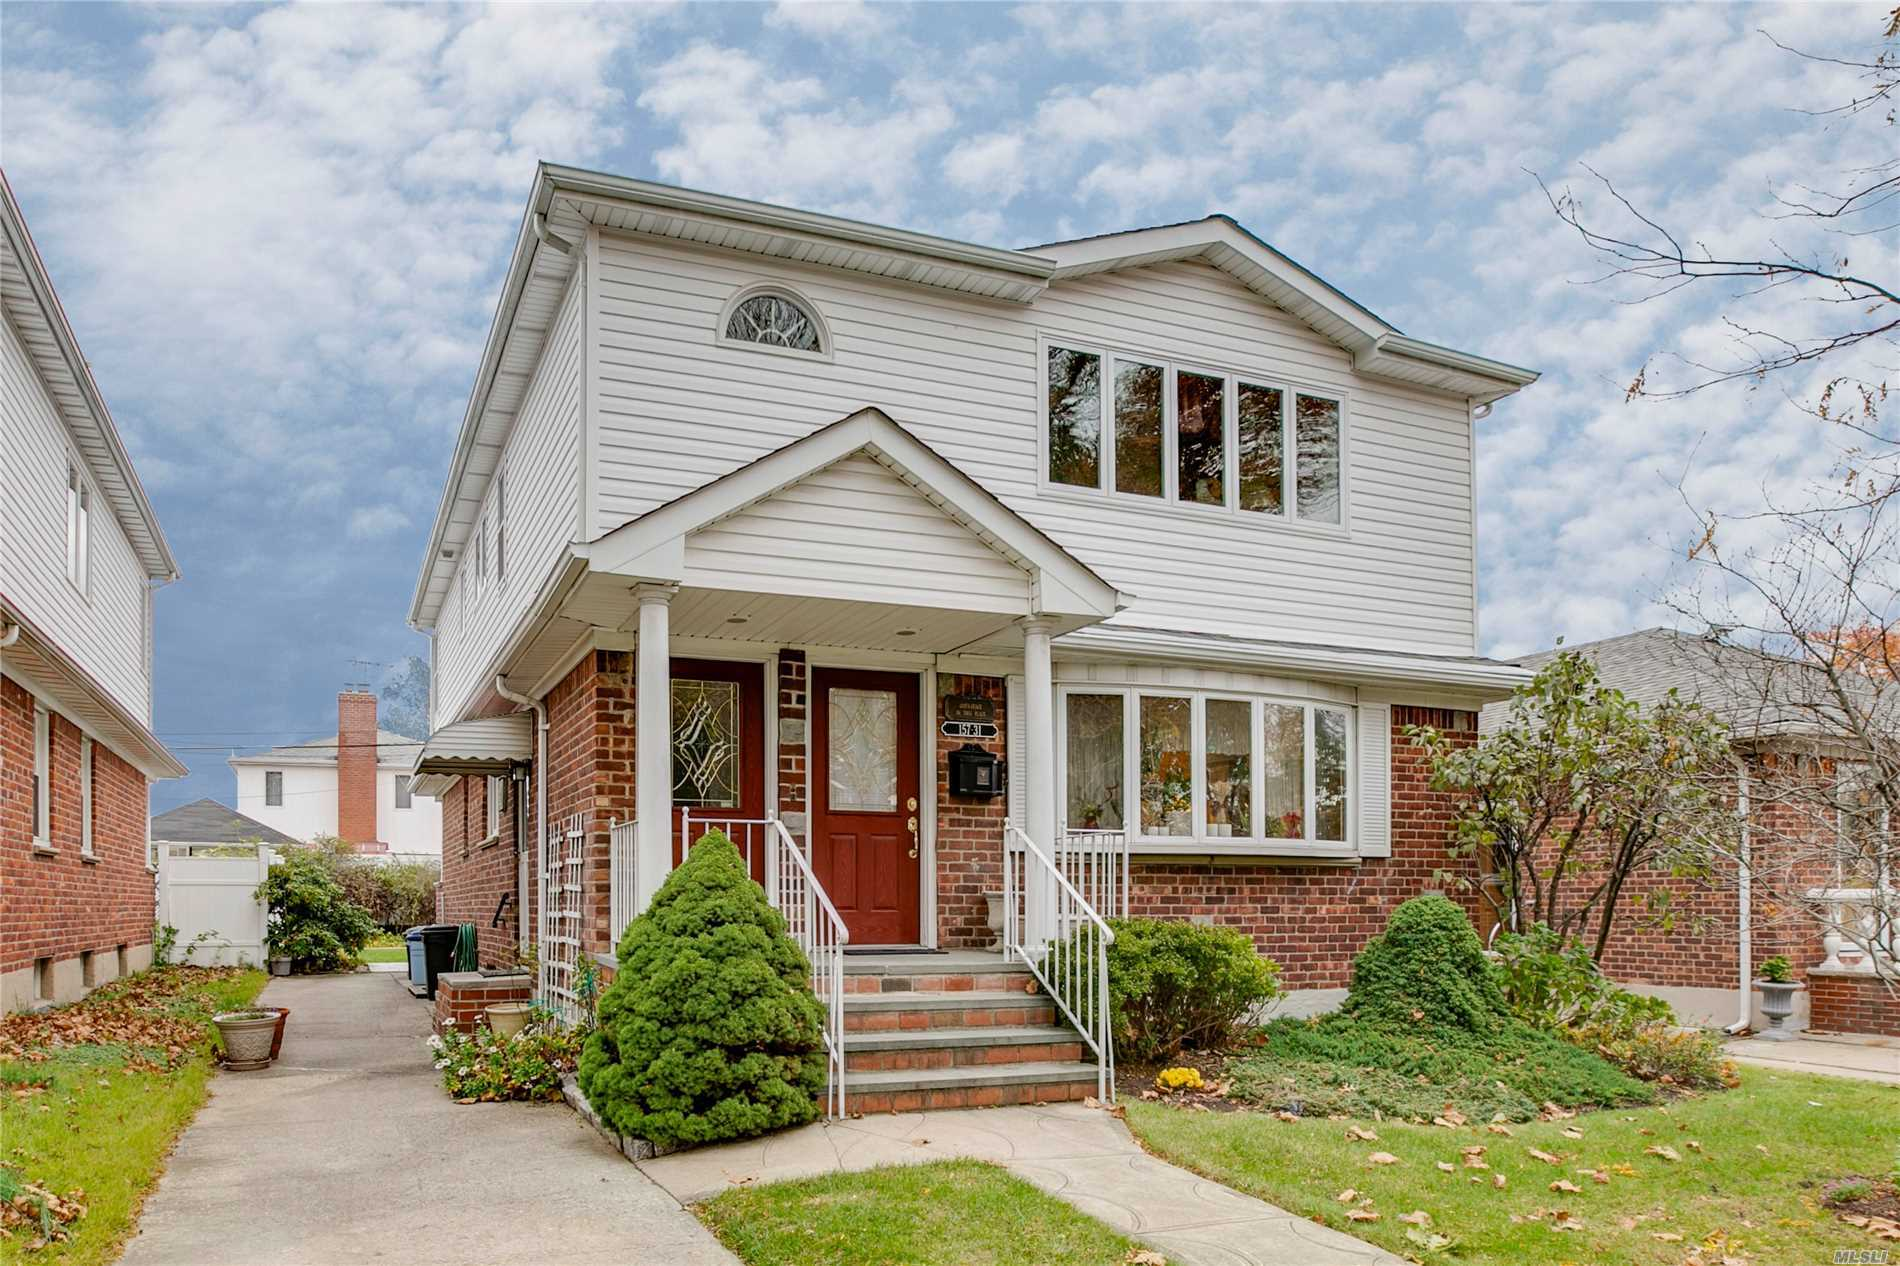 Meticulously Maintained And Updated This Detached 2 Family Home Is Located On A Quiet Residential Tree Lined Street. 2nd Floor Was Added In 2007 Each Apartment Has Living Room, Formal Dining Room, Eat In Kitchen, 3 Bedrooms And Full Bath. Full Finished Basement Used As Office And Family Room. It Is Conveniently Located Close To Schools, Shopping, Buses, Highways And Bridges.